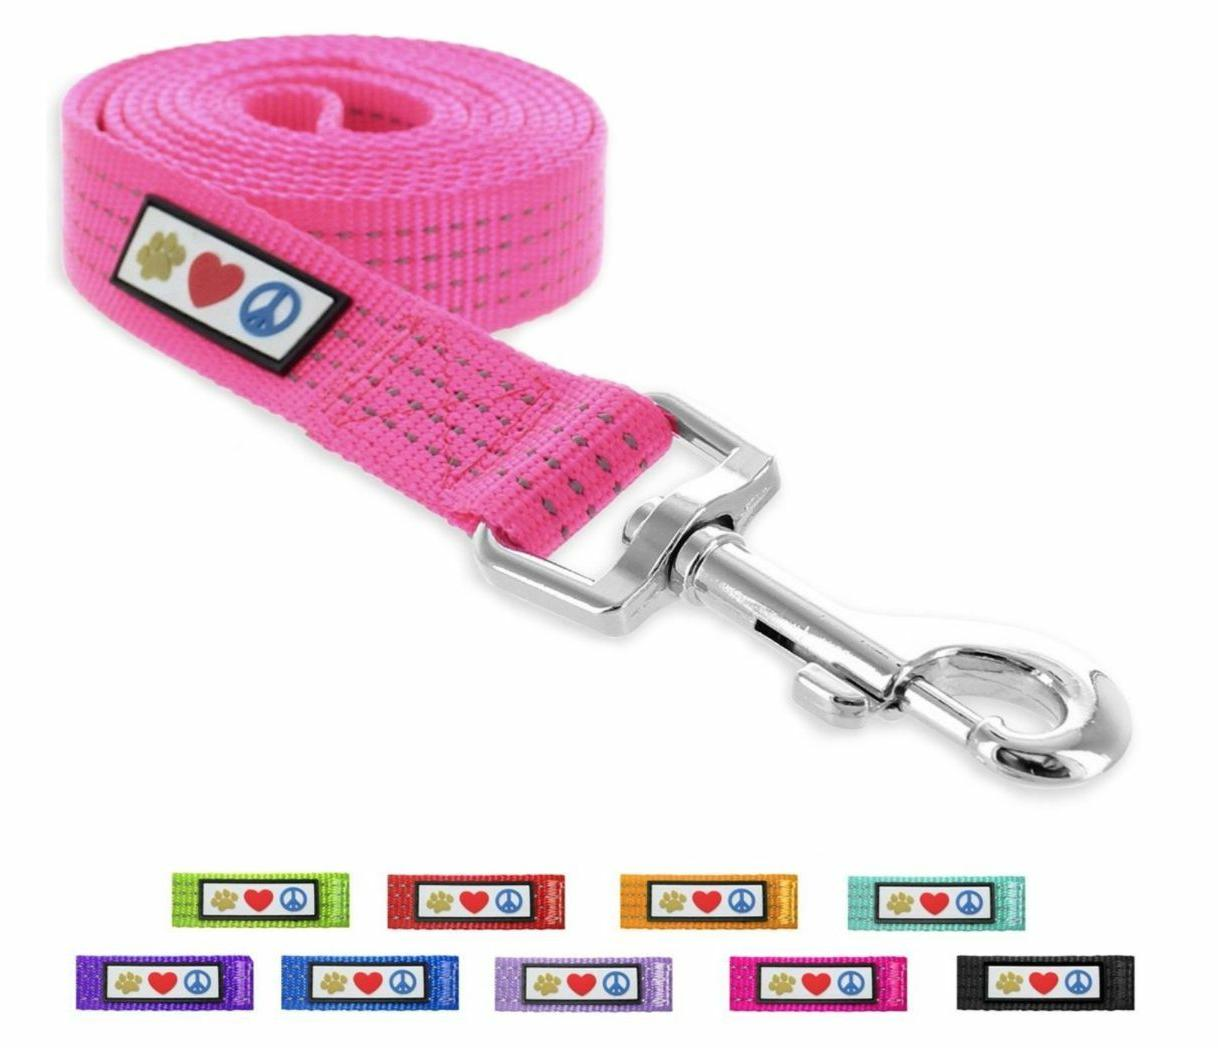 Pet Reflective Soft Puppy / Dog Leash 6 ft by Pawtitas